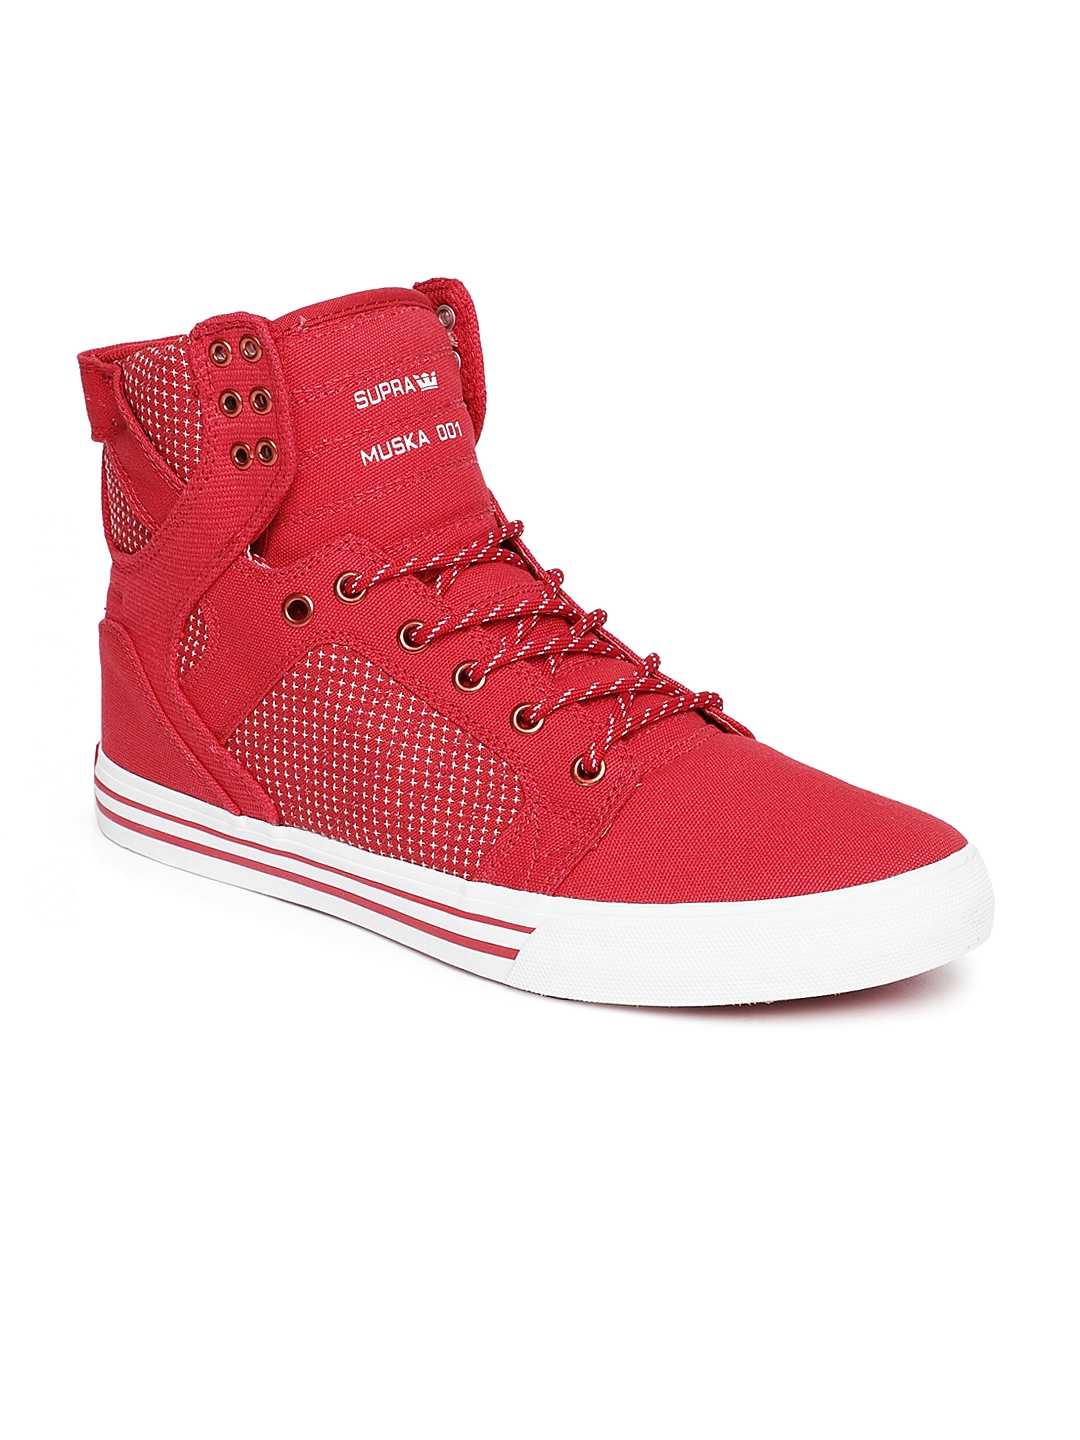 a9cf2d61e563 Buy Supra Men Red Formula One SKYTOP Sneakers - Casual Shoes for Men ...